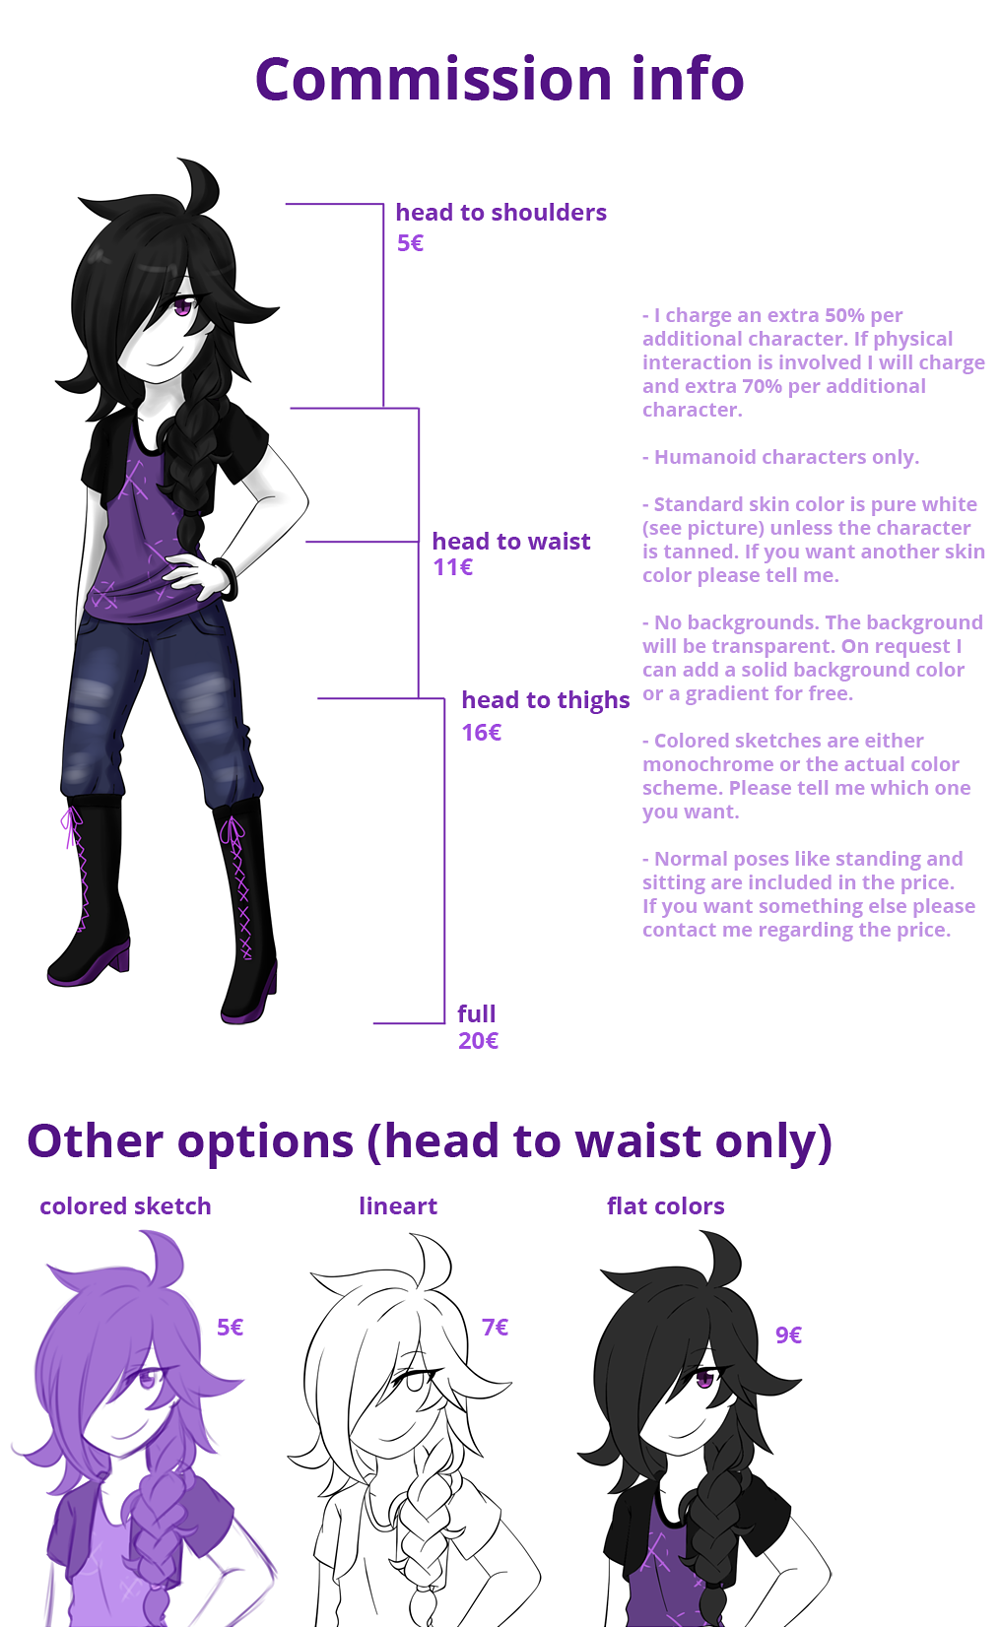 Commission Info by VIMYO